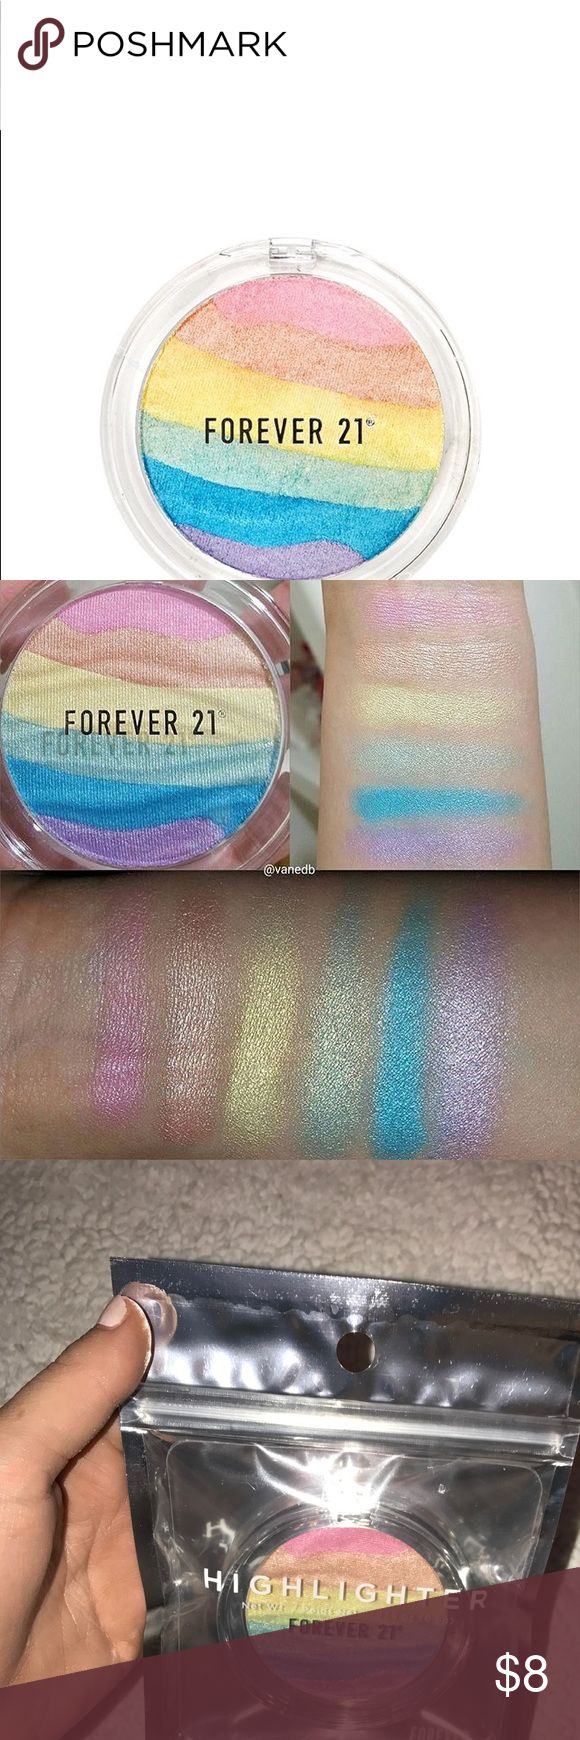 Limited Edition Rainbow Highlighter *NEW* F21 rainbow highlighter. I found these swatches online as mine is still in the original packaging. No longer available on the Forever 21 website. Never used. Package never opened Forever 21 Makeup Luminizer